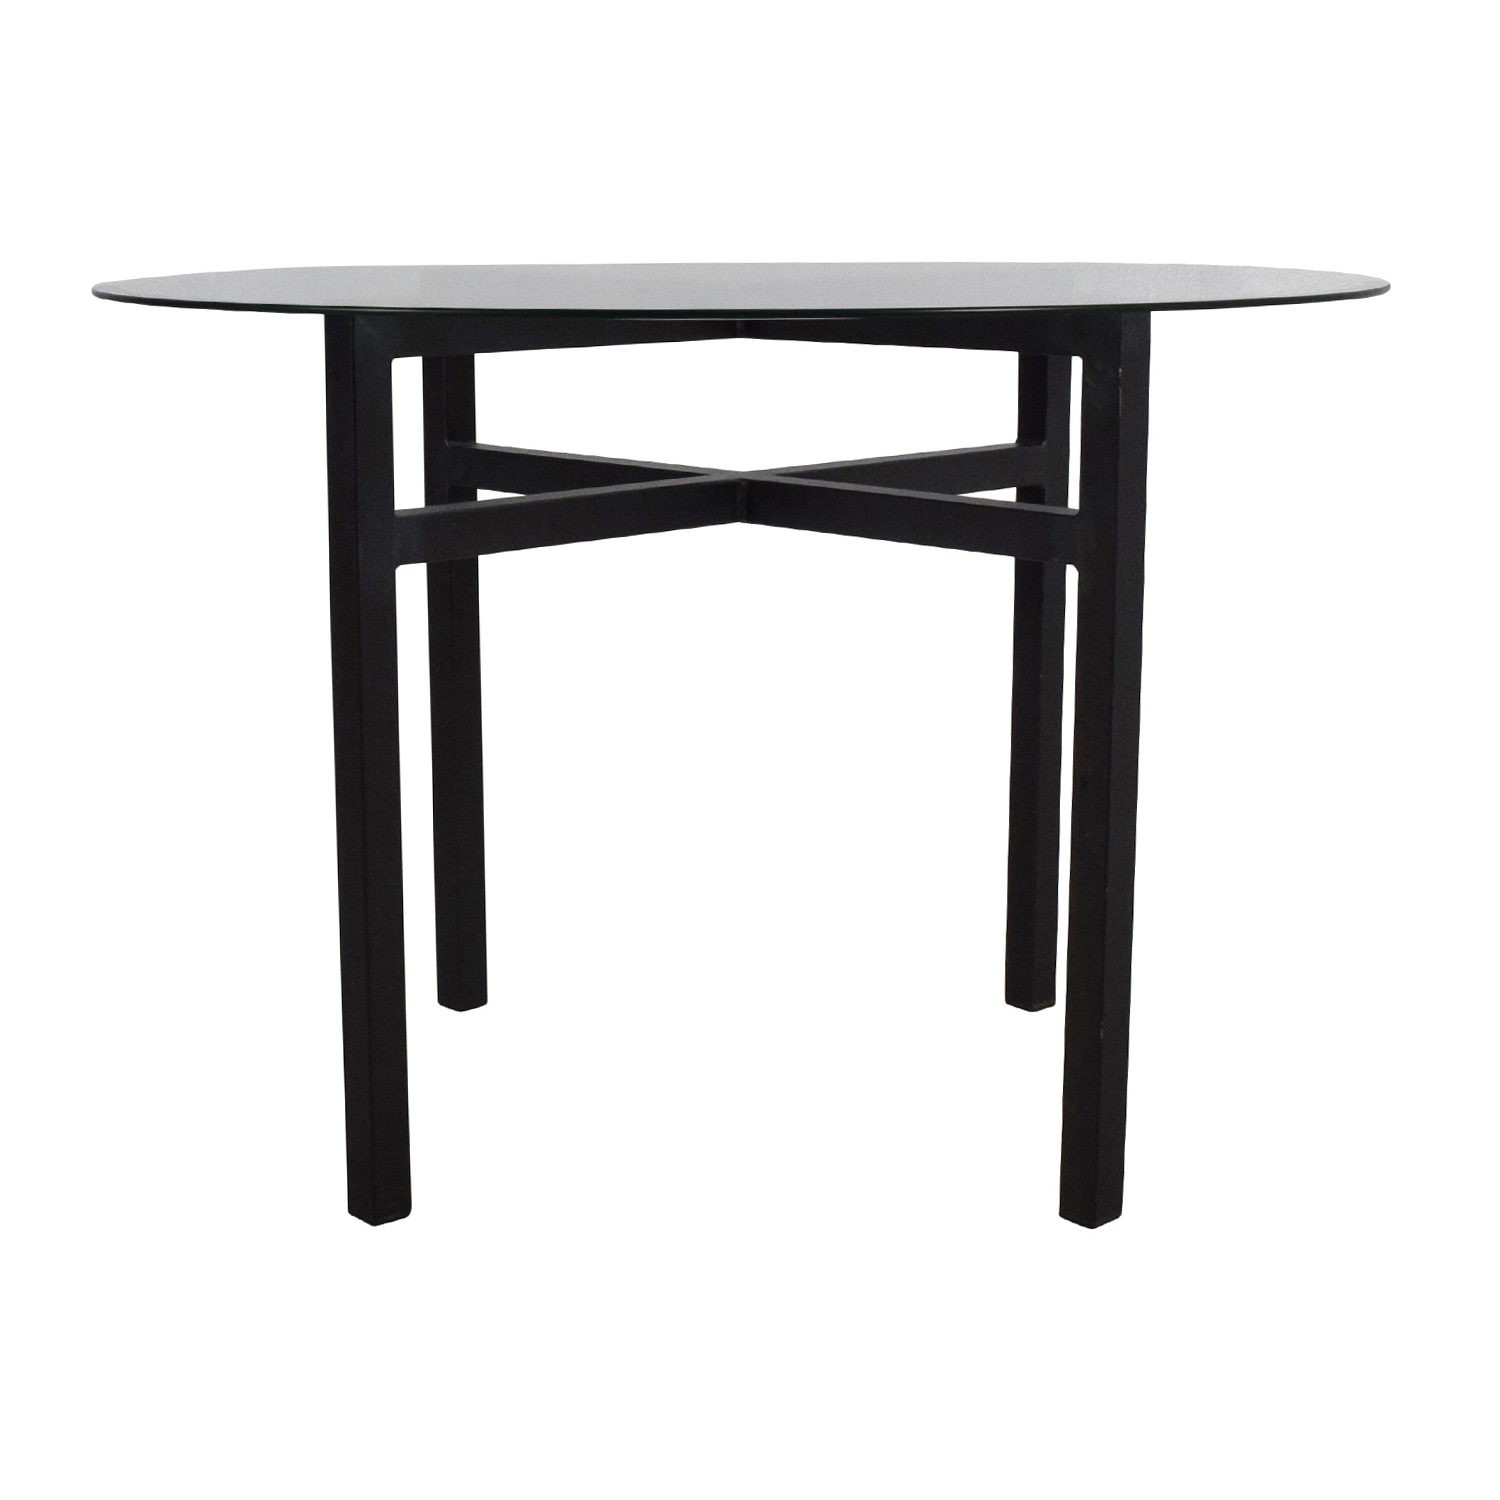 Room and Board Room & Board Benson Glass Top Dining Table for sale